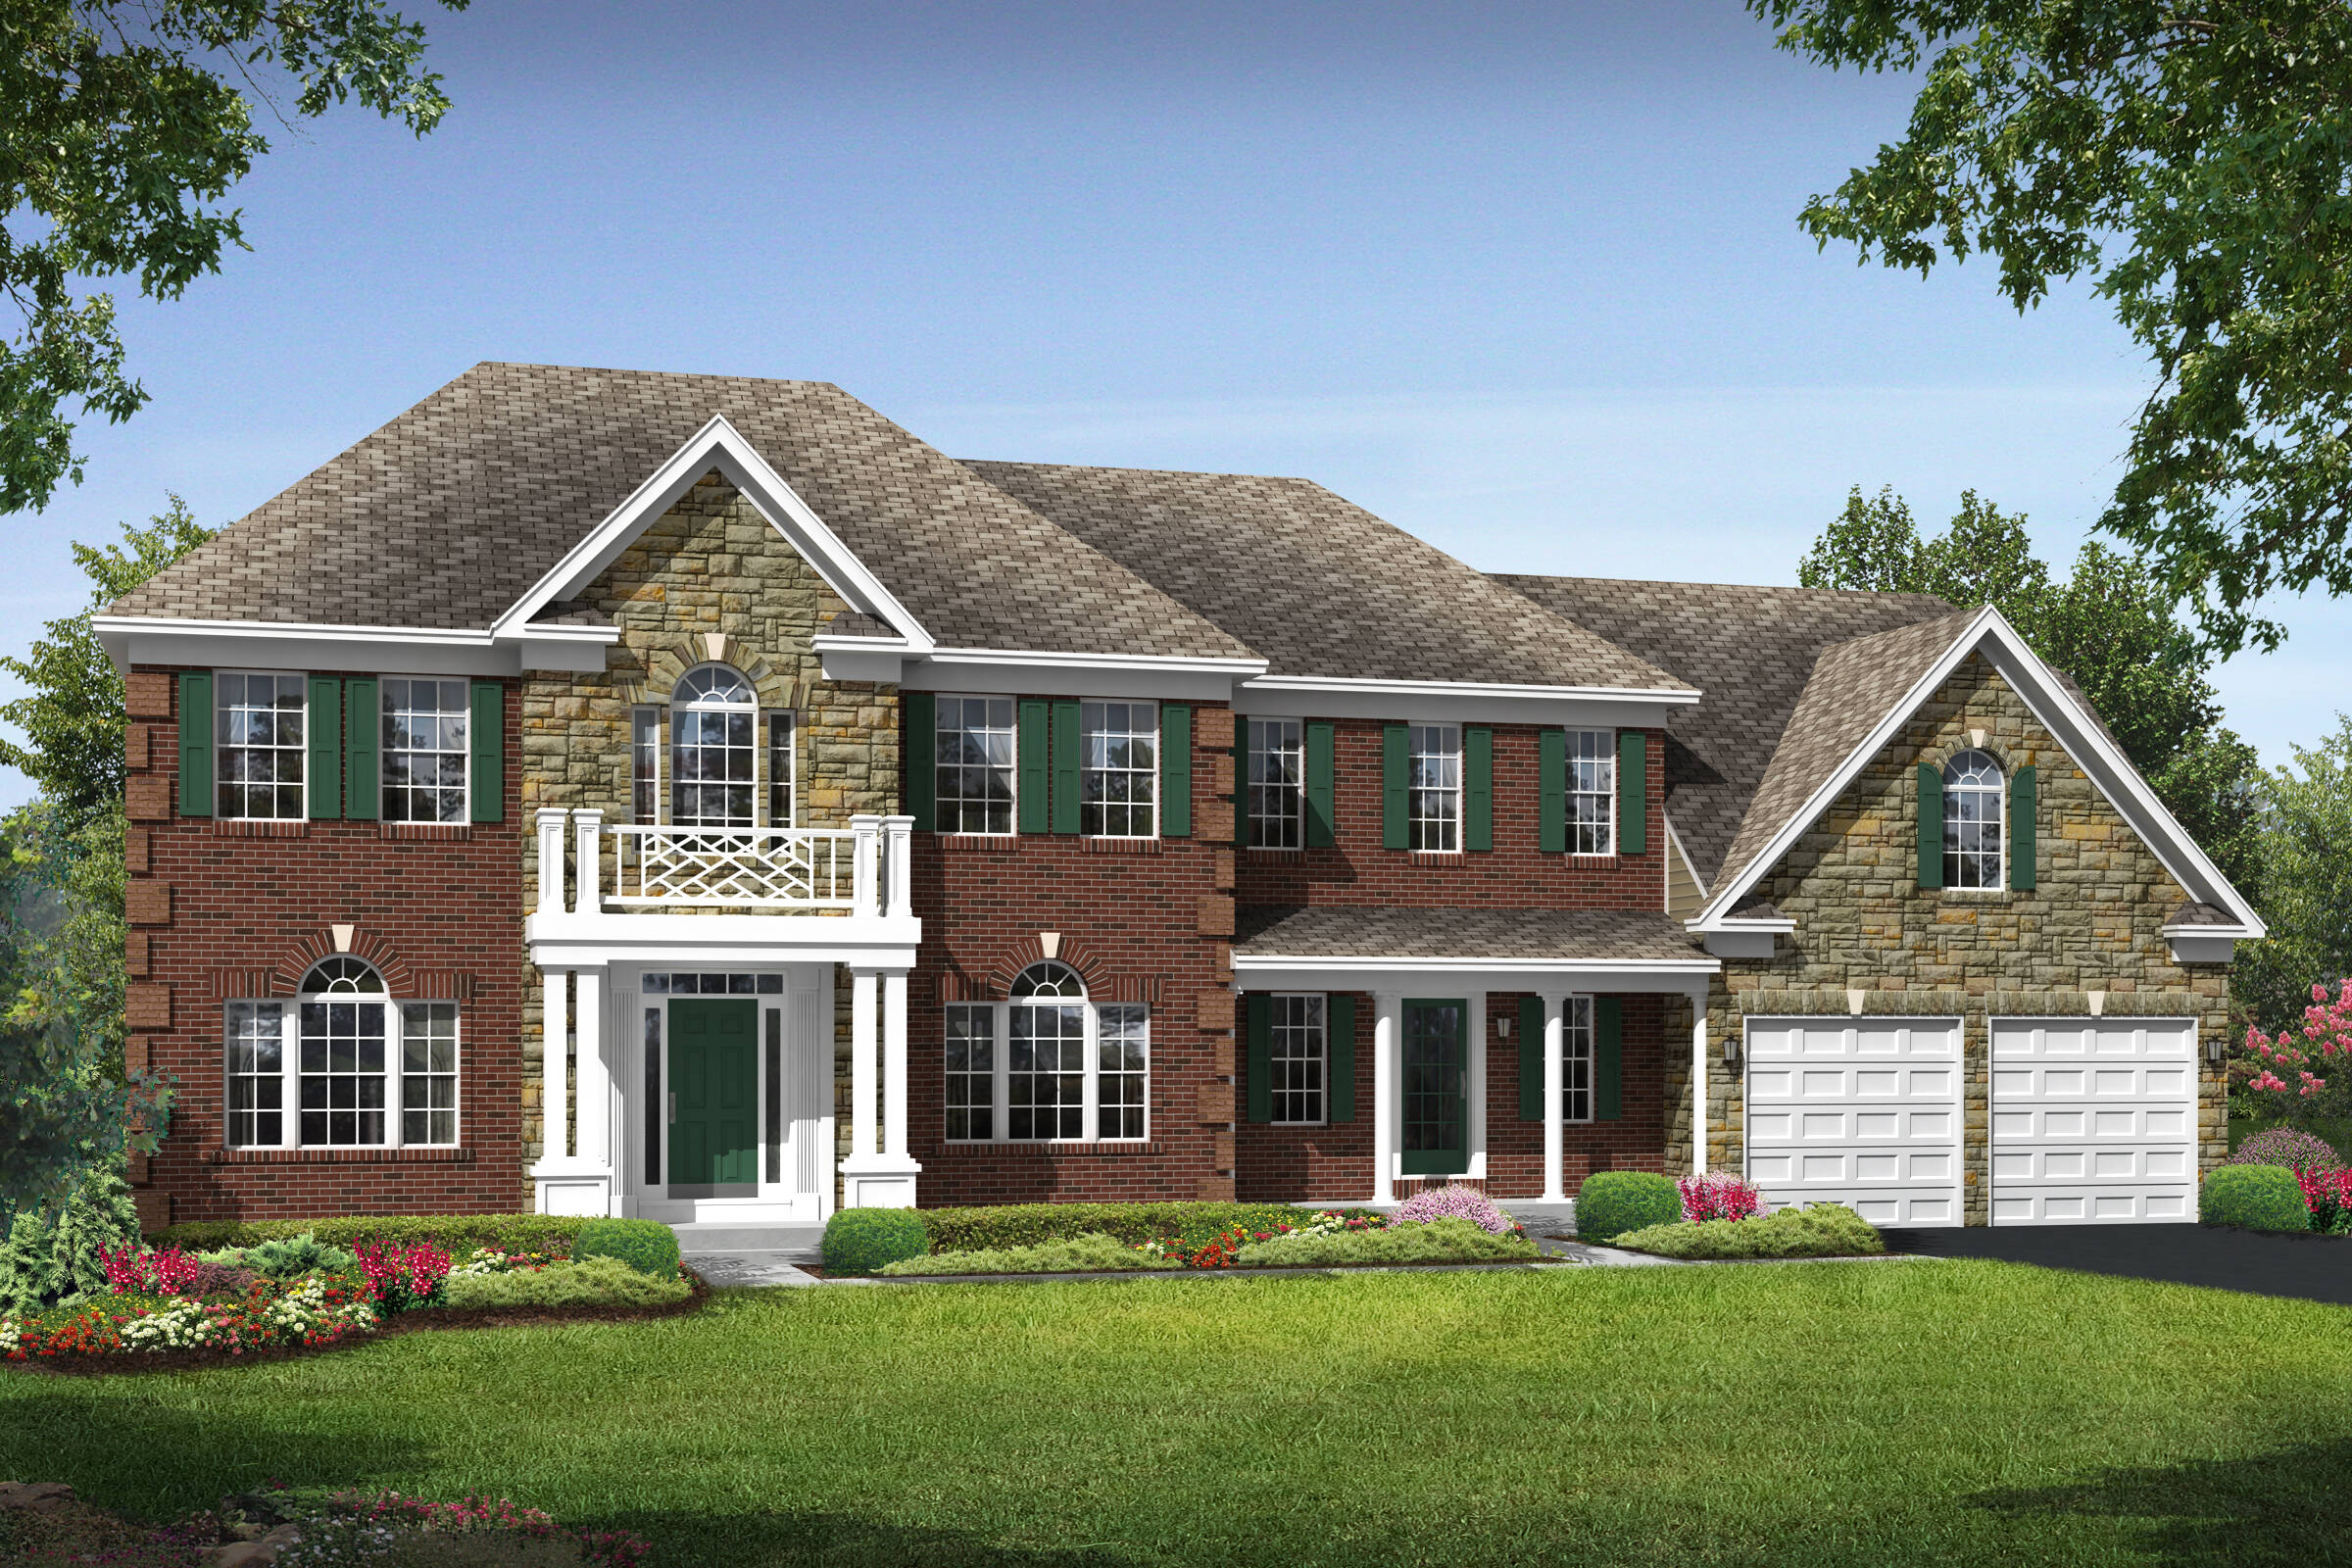 wisconsin colonial new homes at reserves at leeland station in virginia